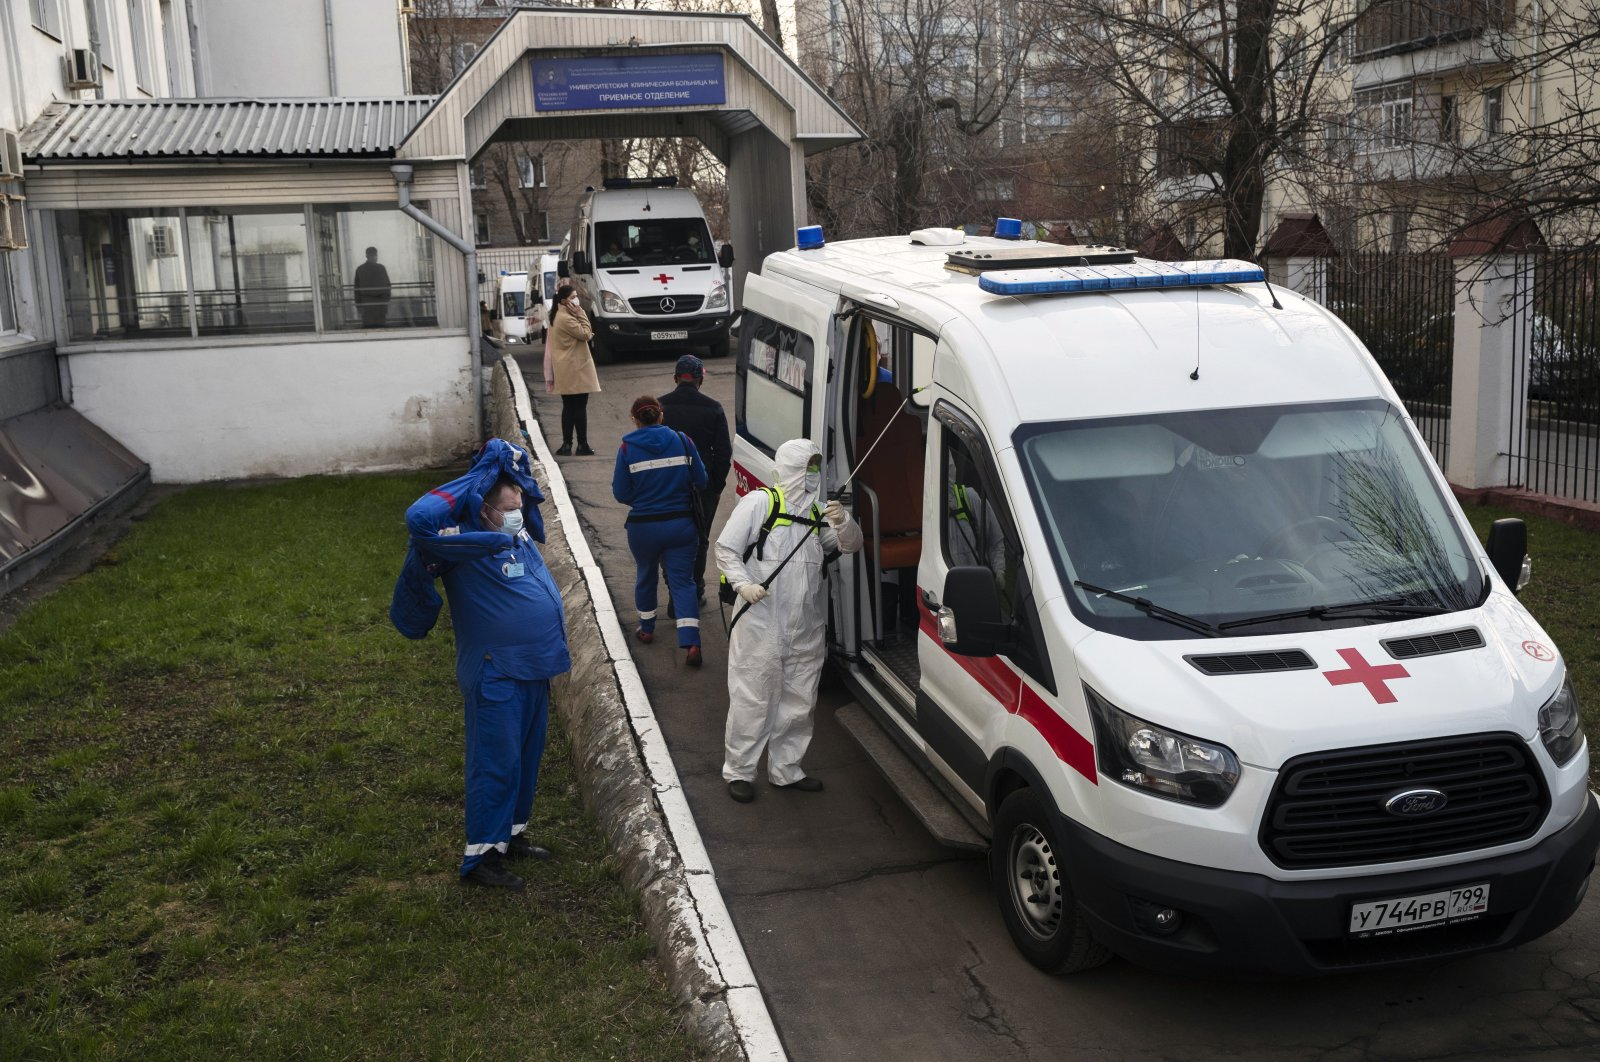 A medical worker disinfects an ambulance after transferring a patient suspected of having the coronavirus to a hospital in Moscow, Russia, April 9, 2020. (AP Photo)